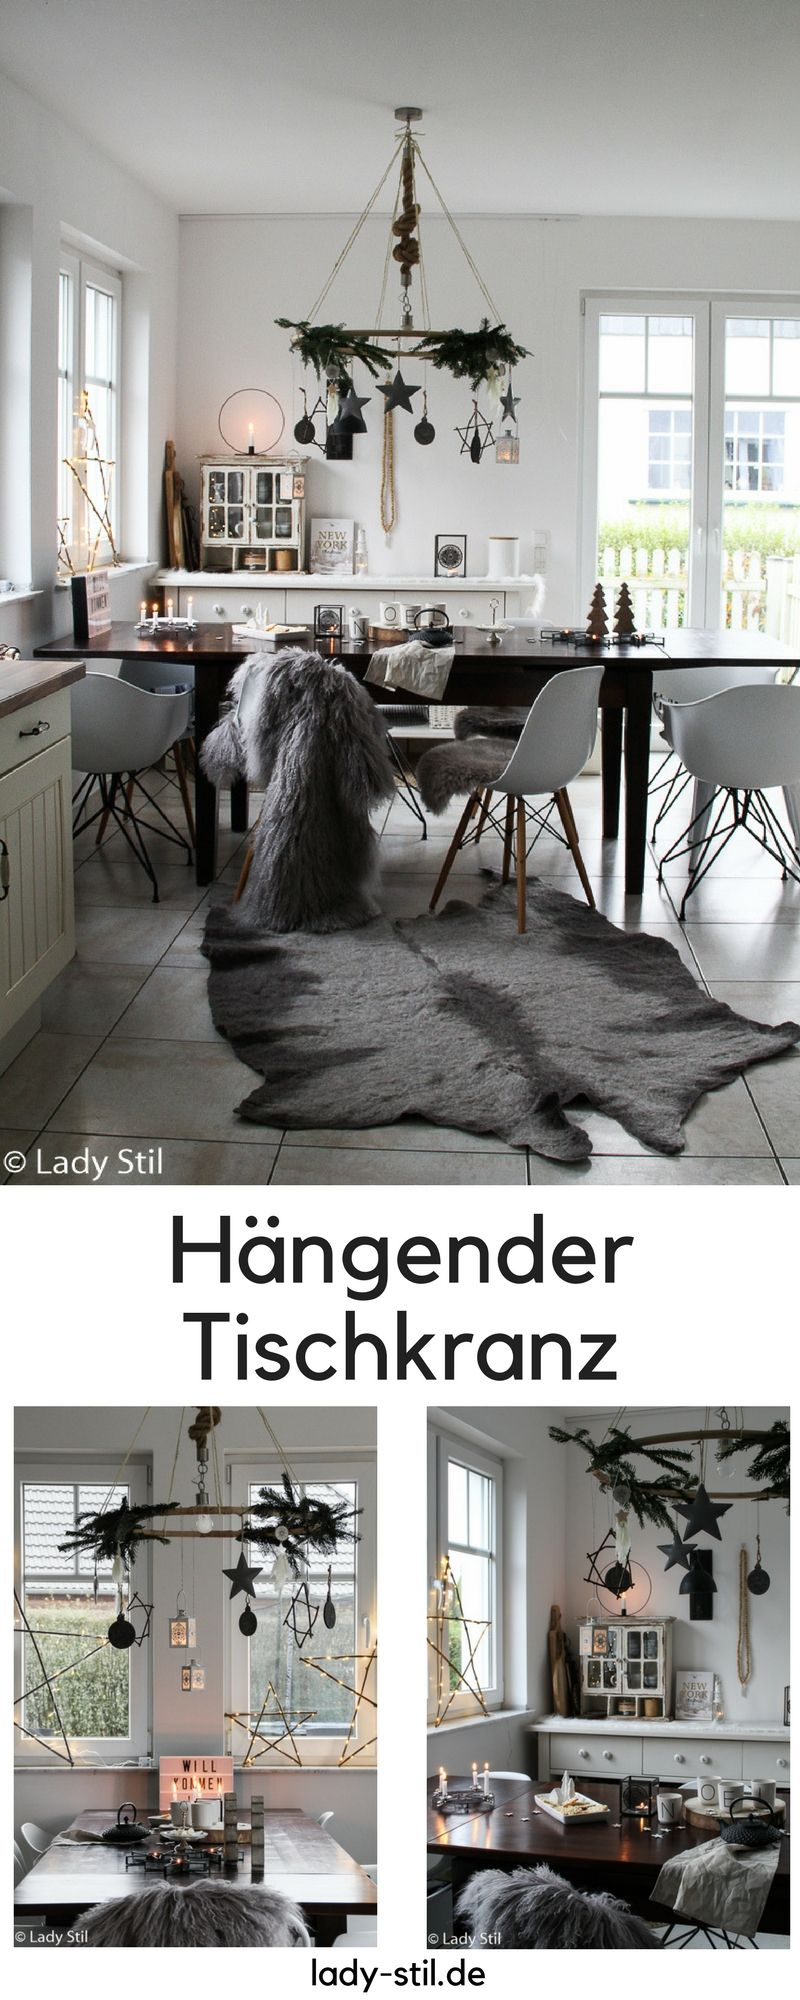 h ngender tischkranz diy lady stil blog pinterest weihnachten dekoration und deko. Black Bedroom Furniture Sets. Home Design Ideas